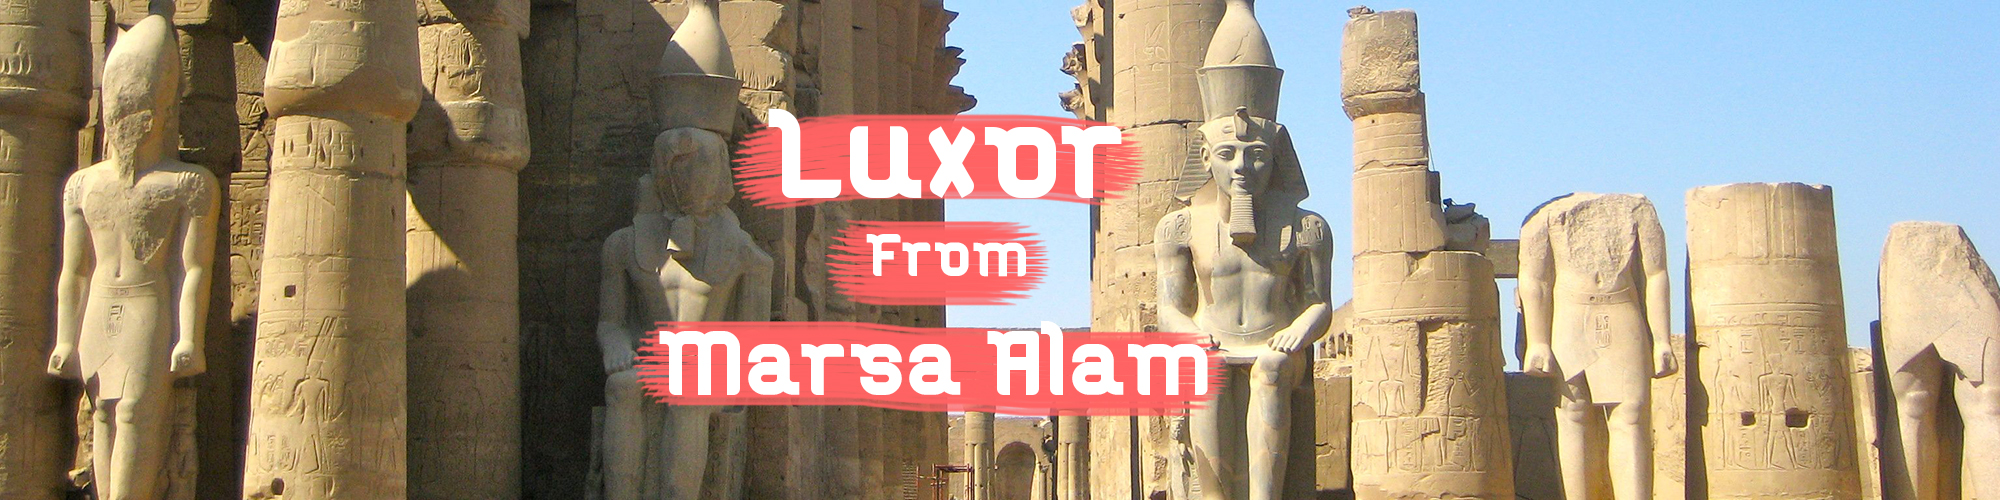 Trips-to-Luxor-from-Marsa-Alam ToursFromHurghada